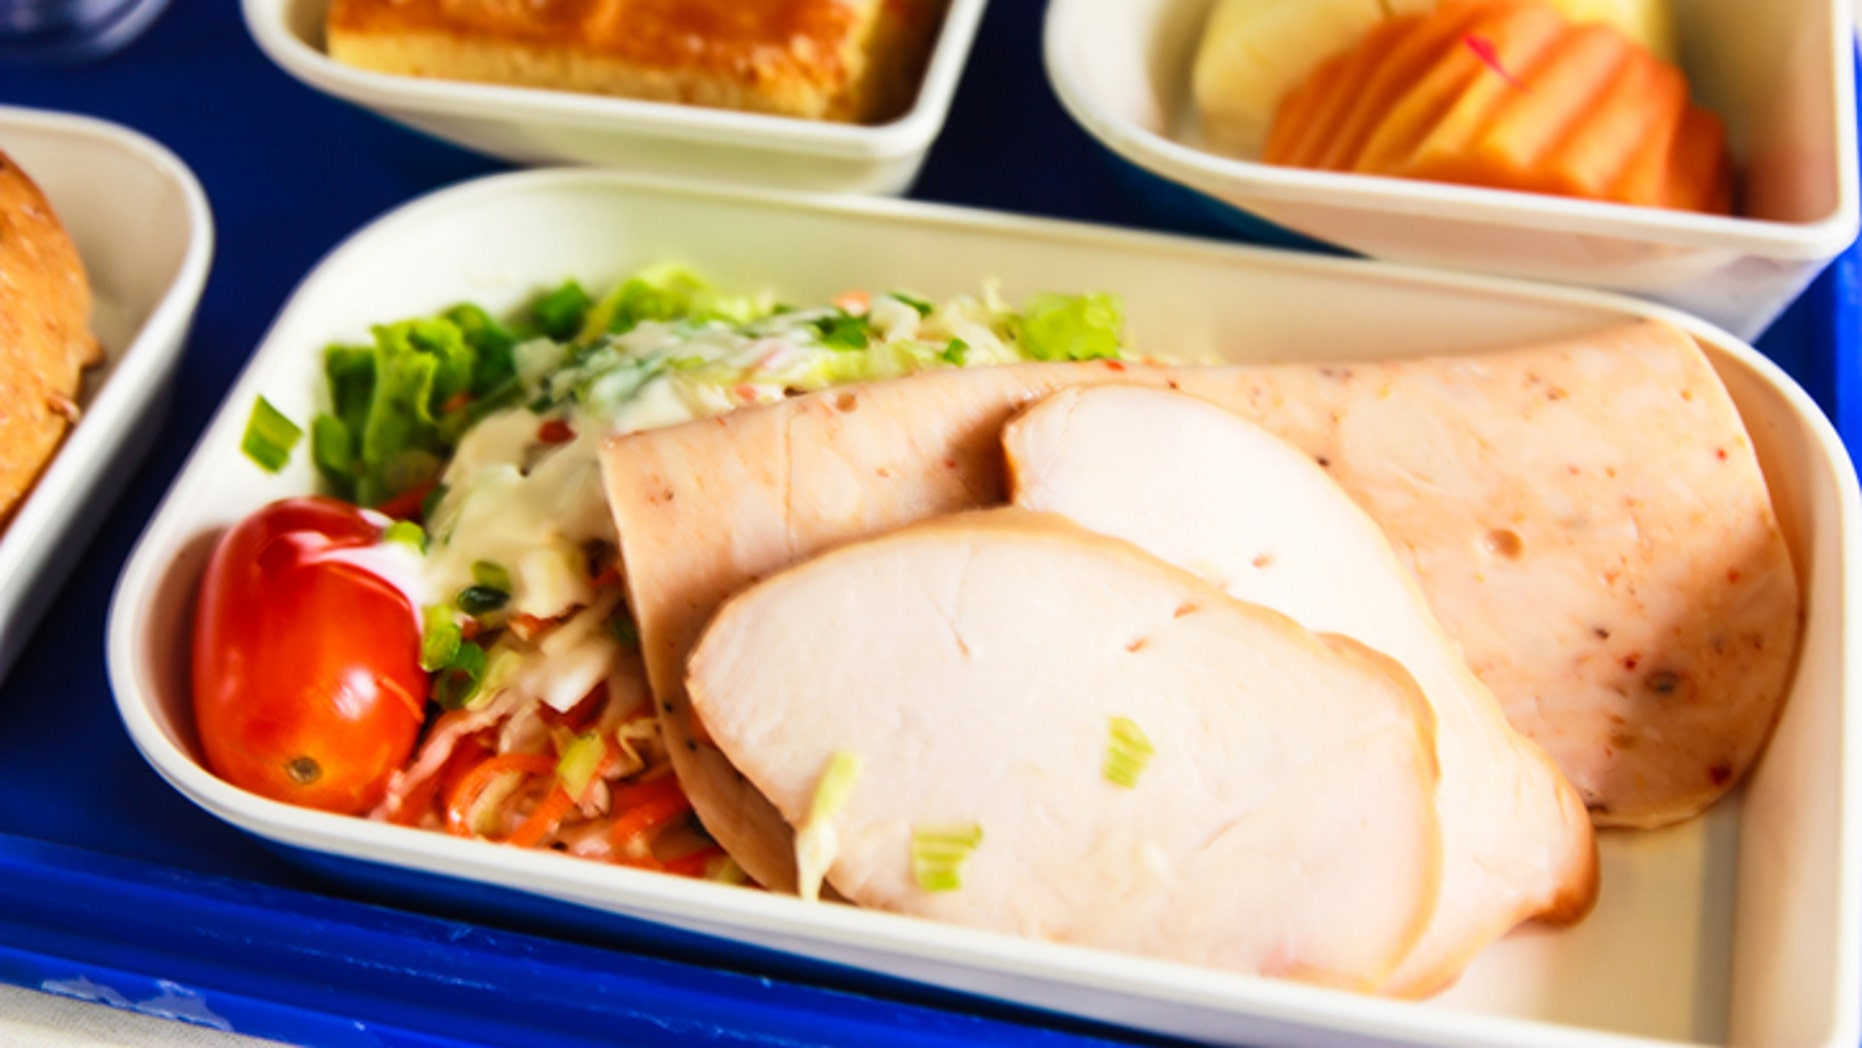 Do you miss airplane food?